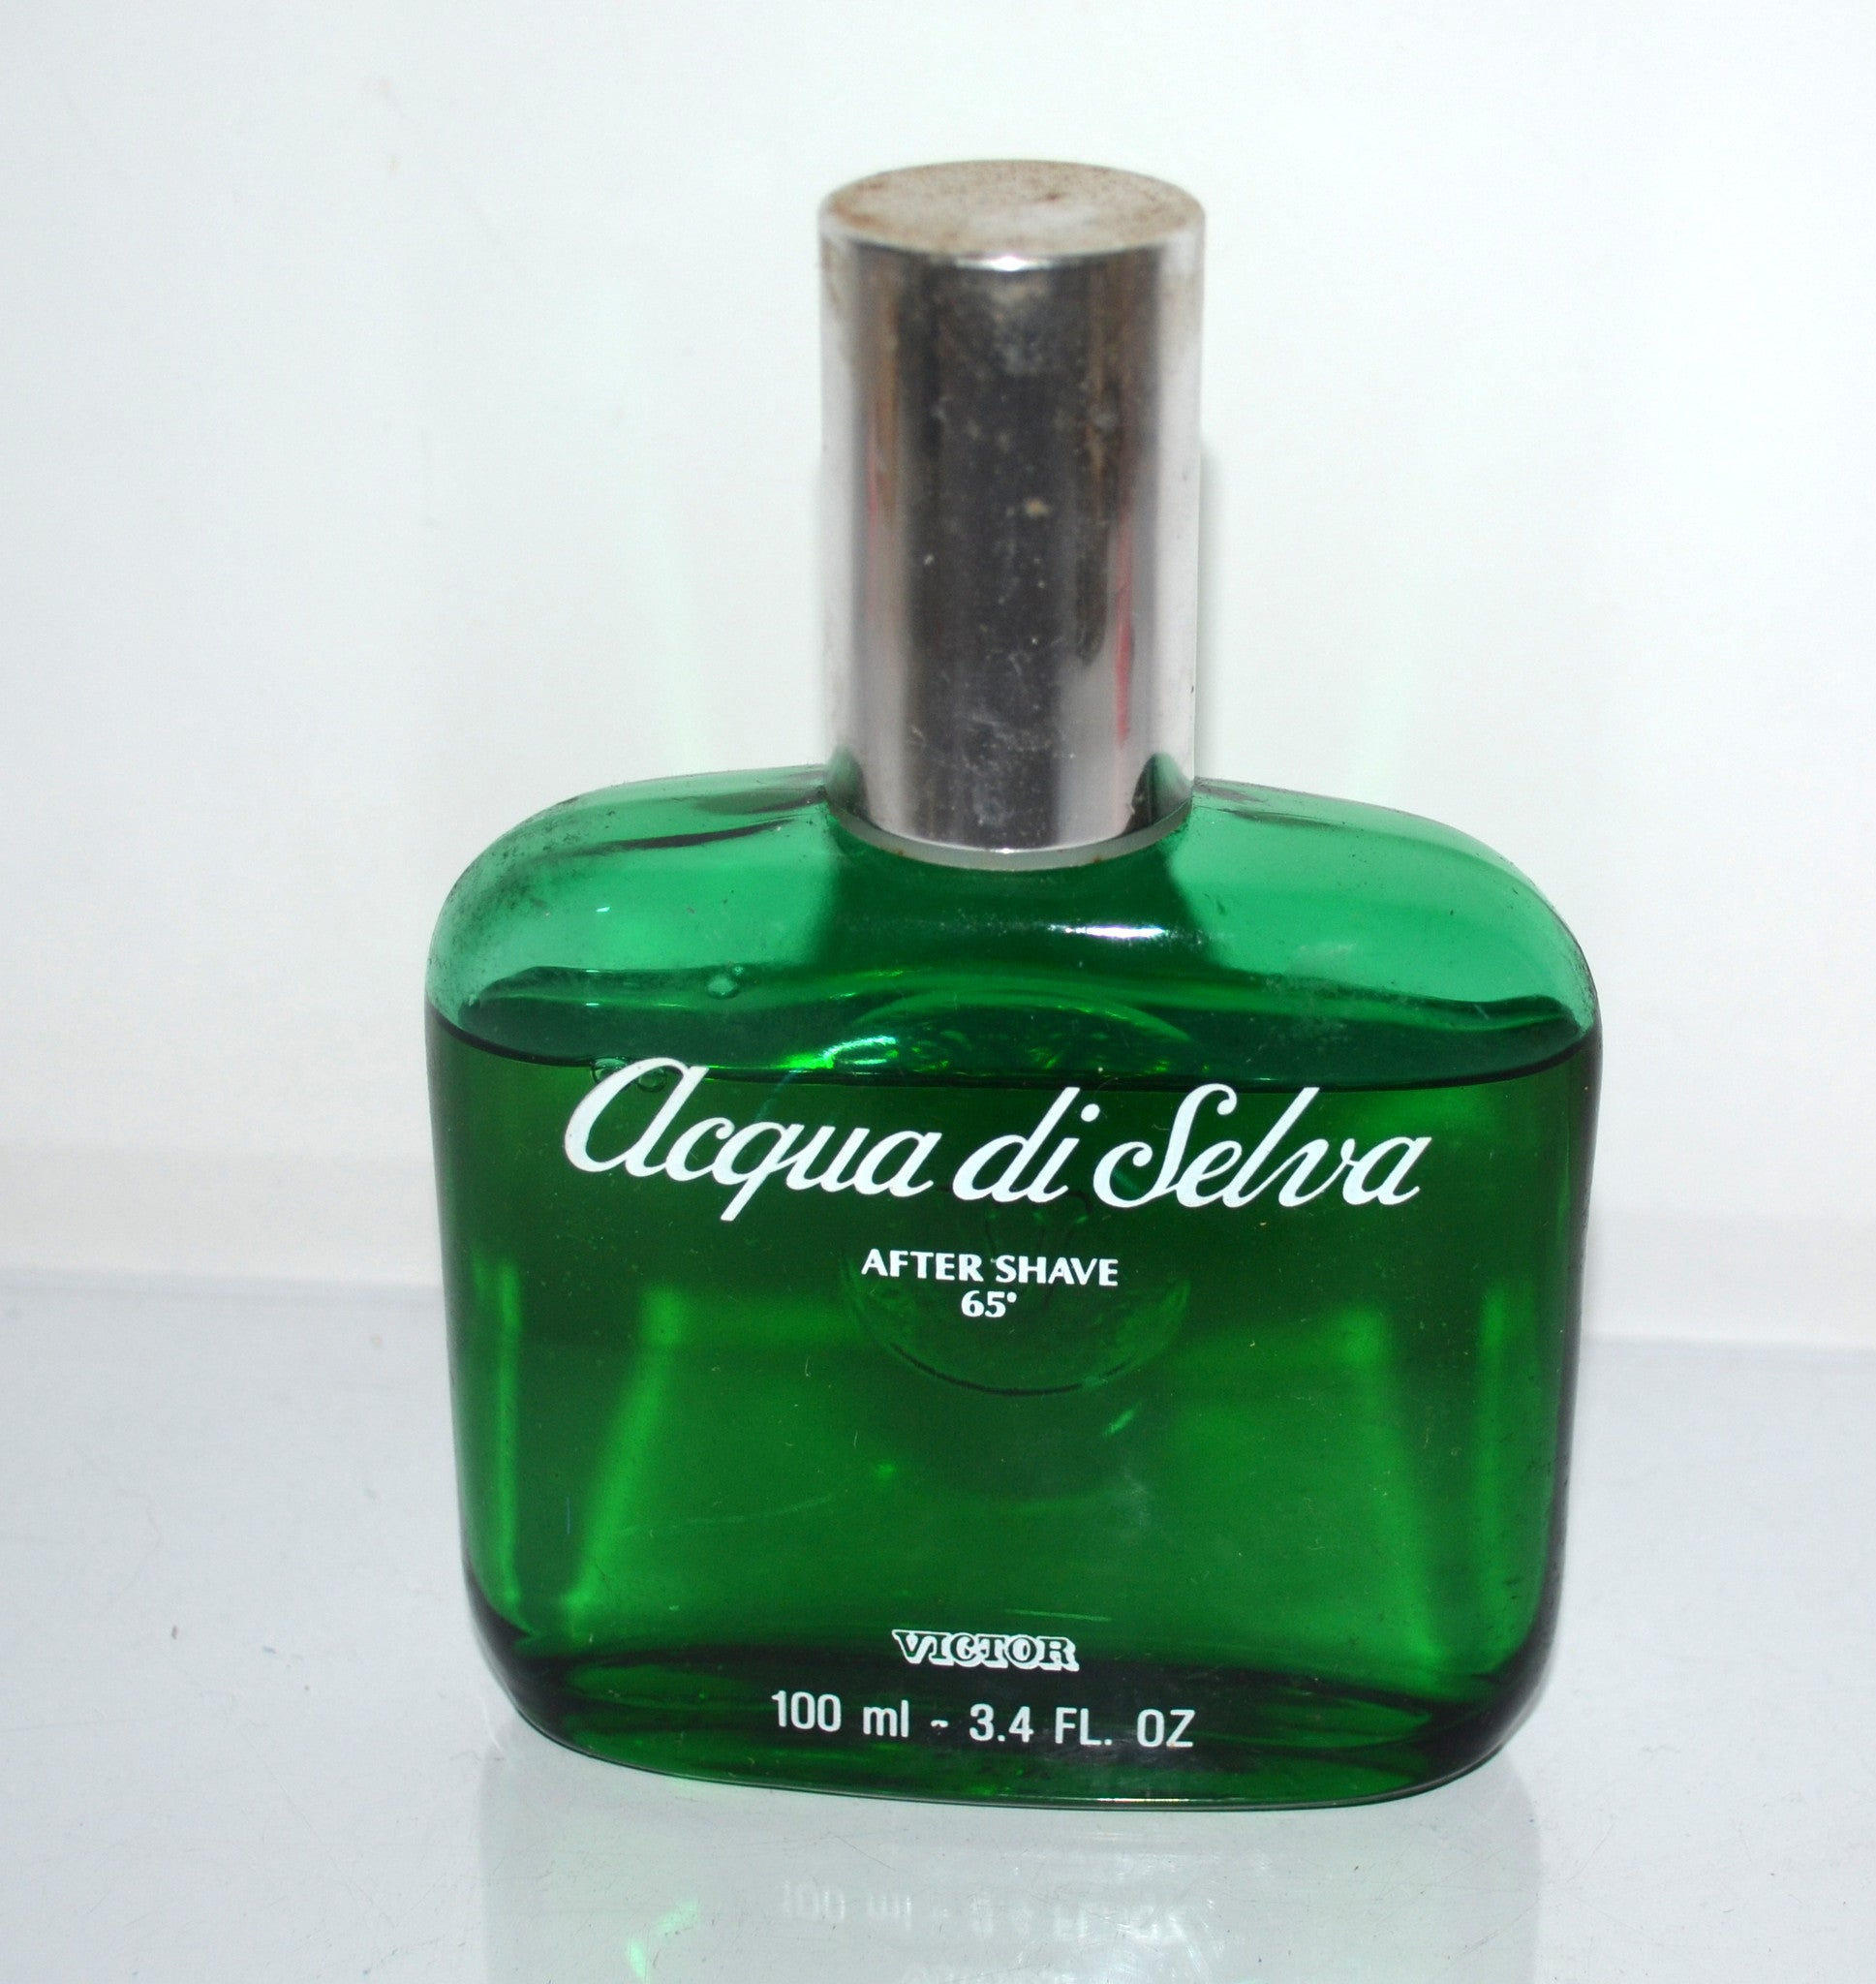 Victor Acqua di Selva After Shave